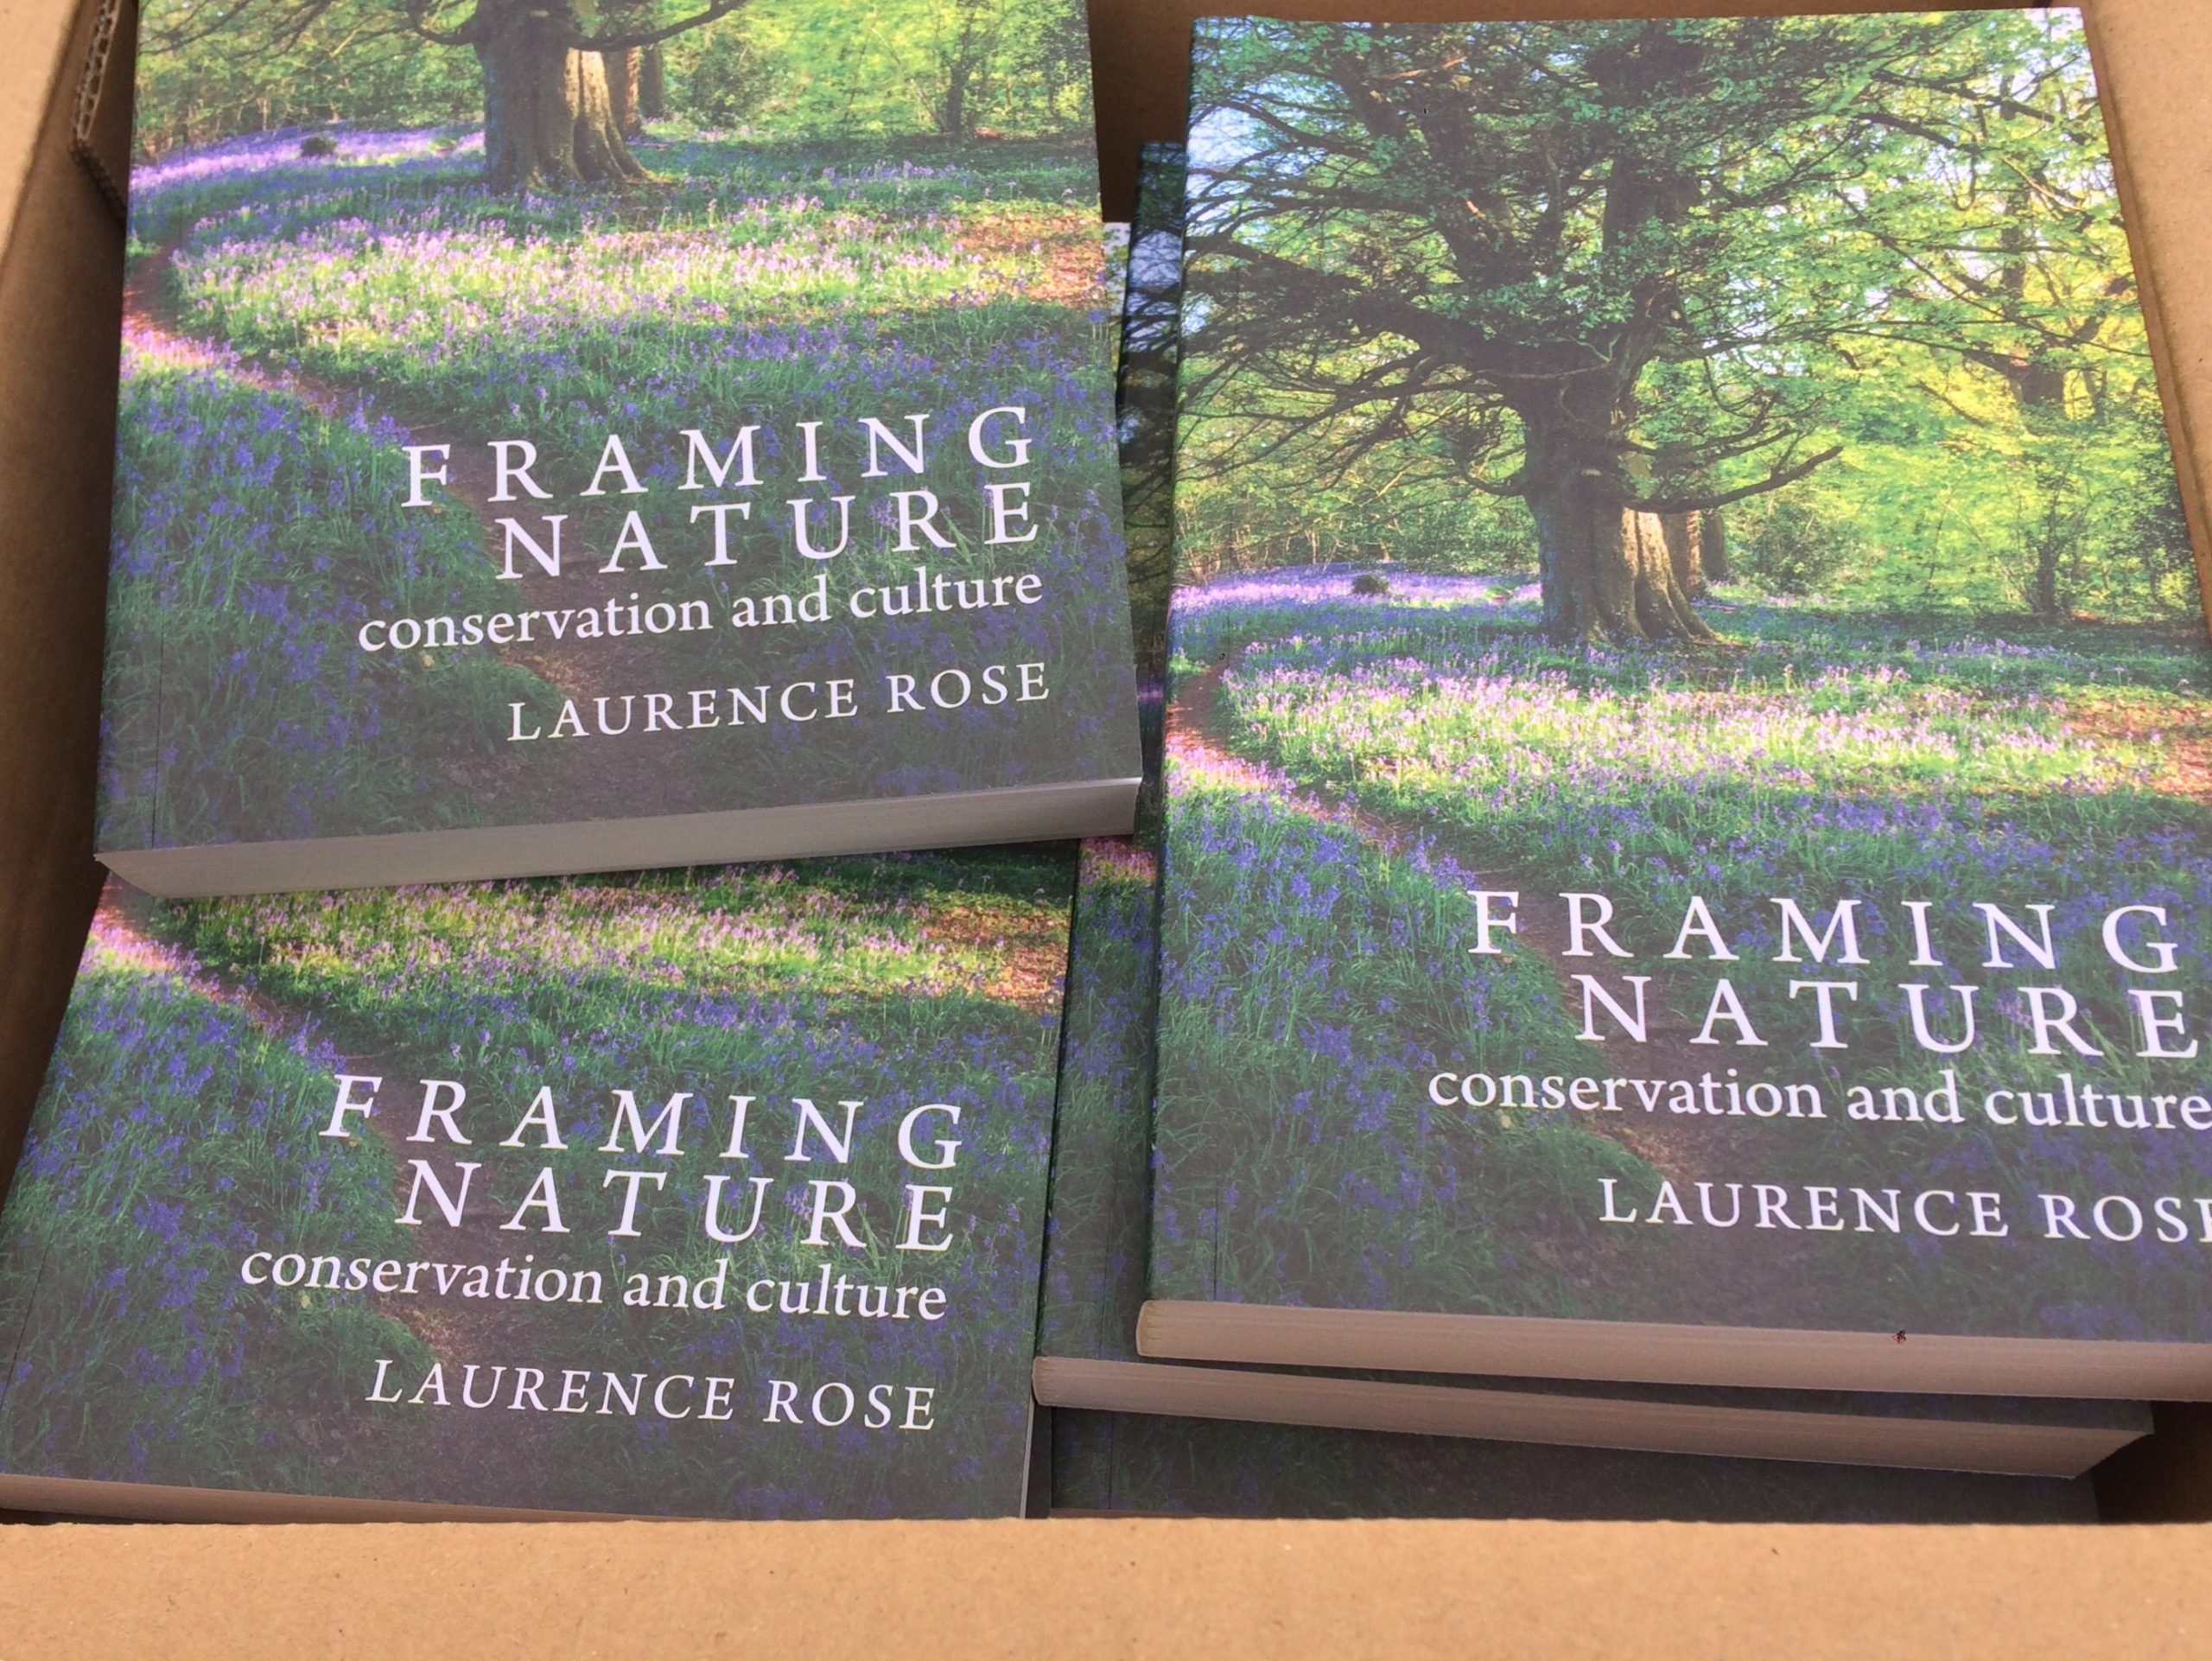 Copies of Framing Nature by Laurence Rose